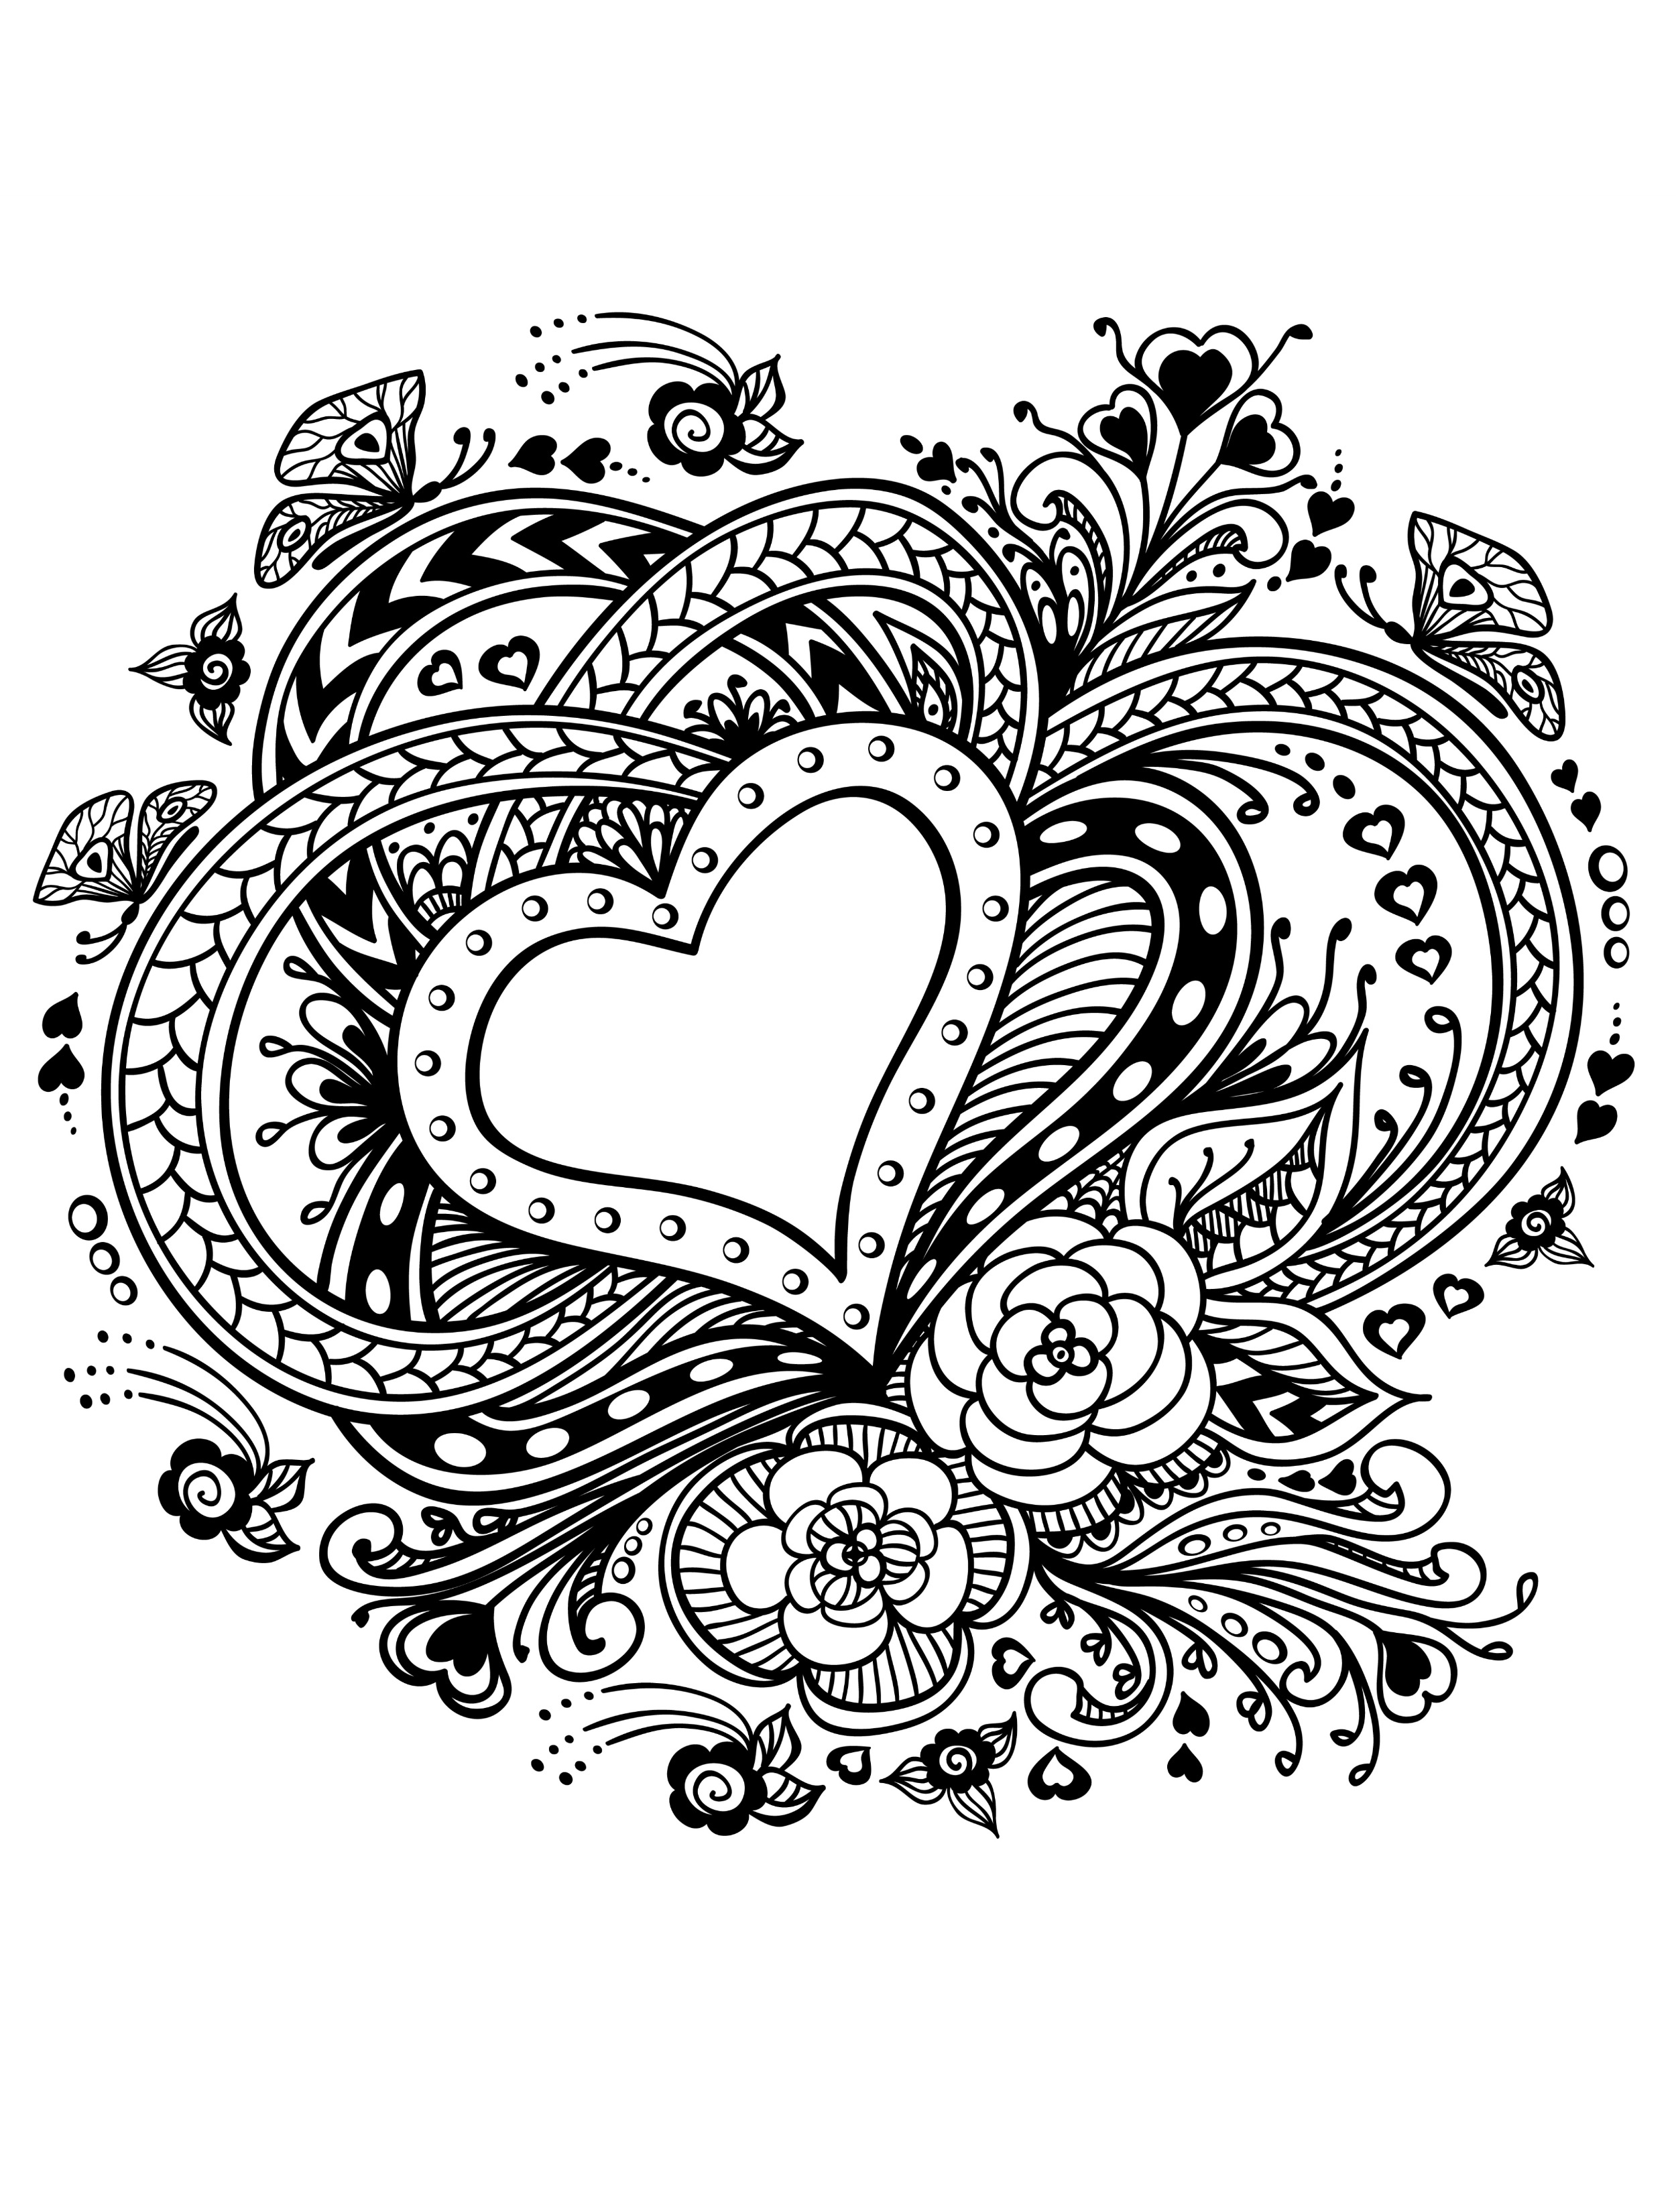 free printable valentine coloring pages valentines day coloring pages for adults best coloring coloring valentine printable free pages